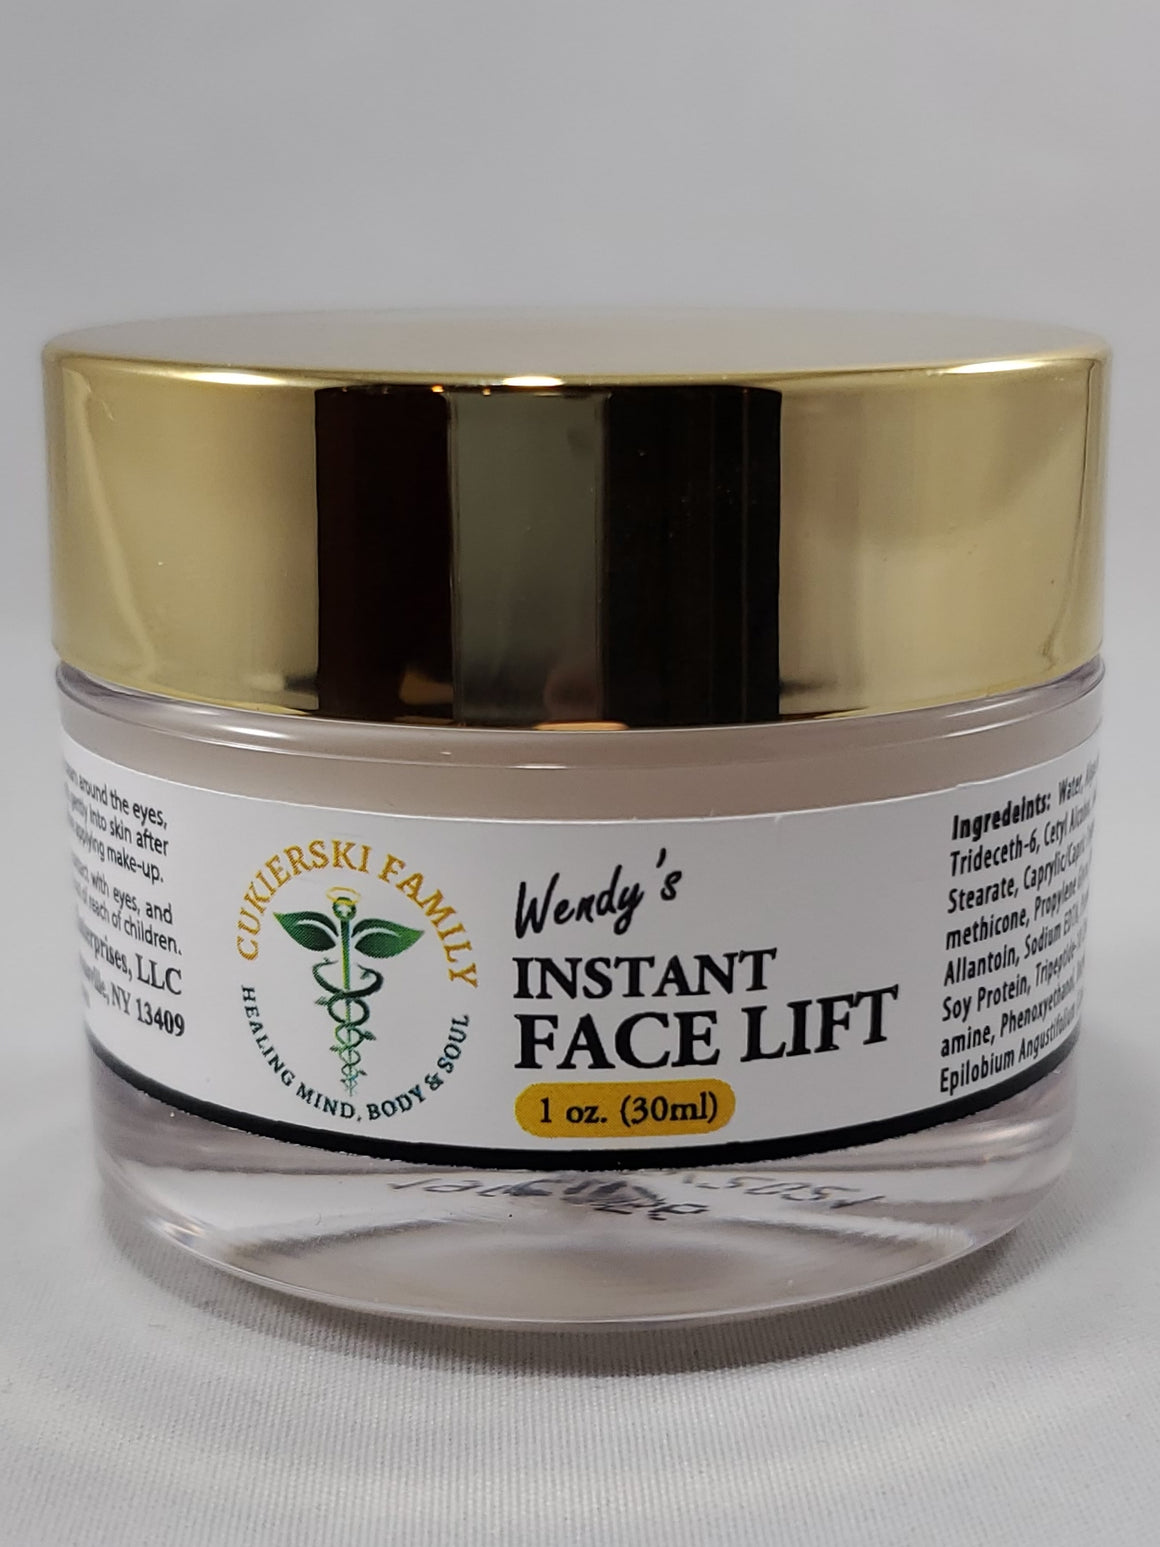 Wendy's Instant Face Lift in a jar